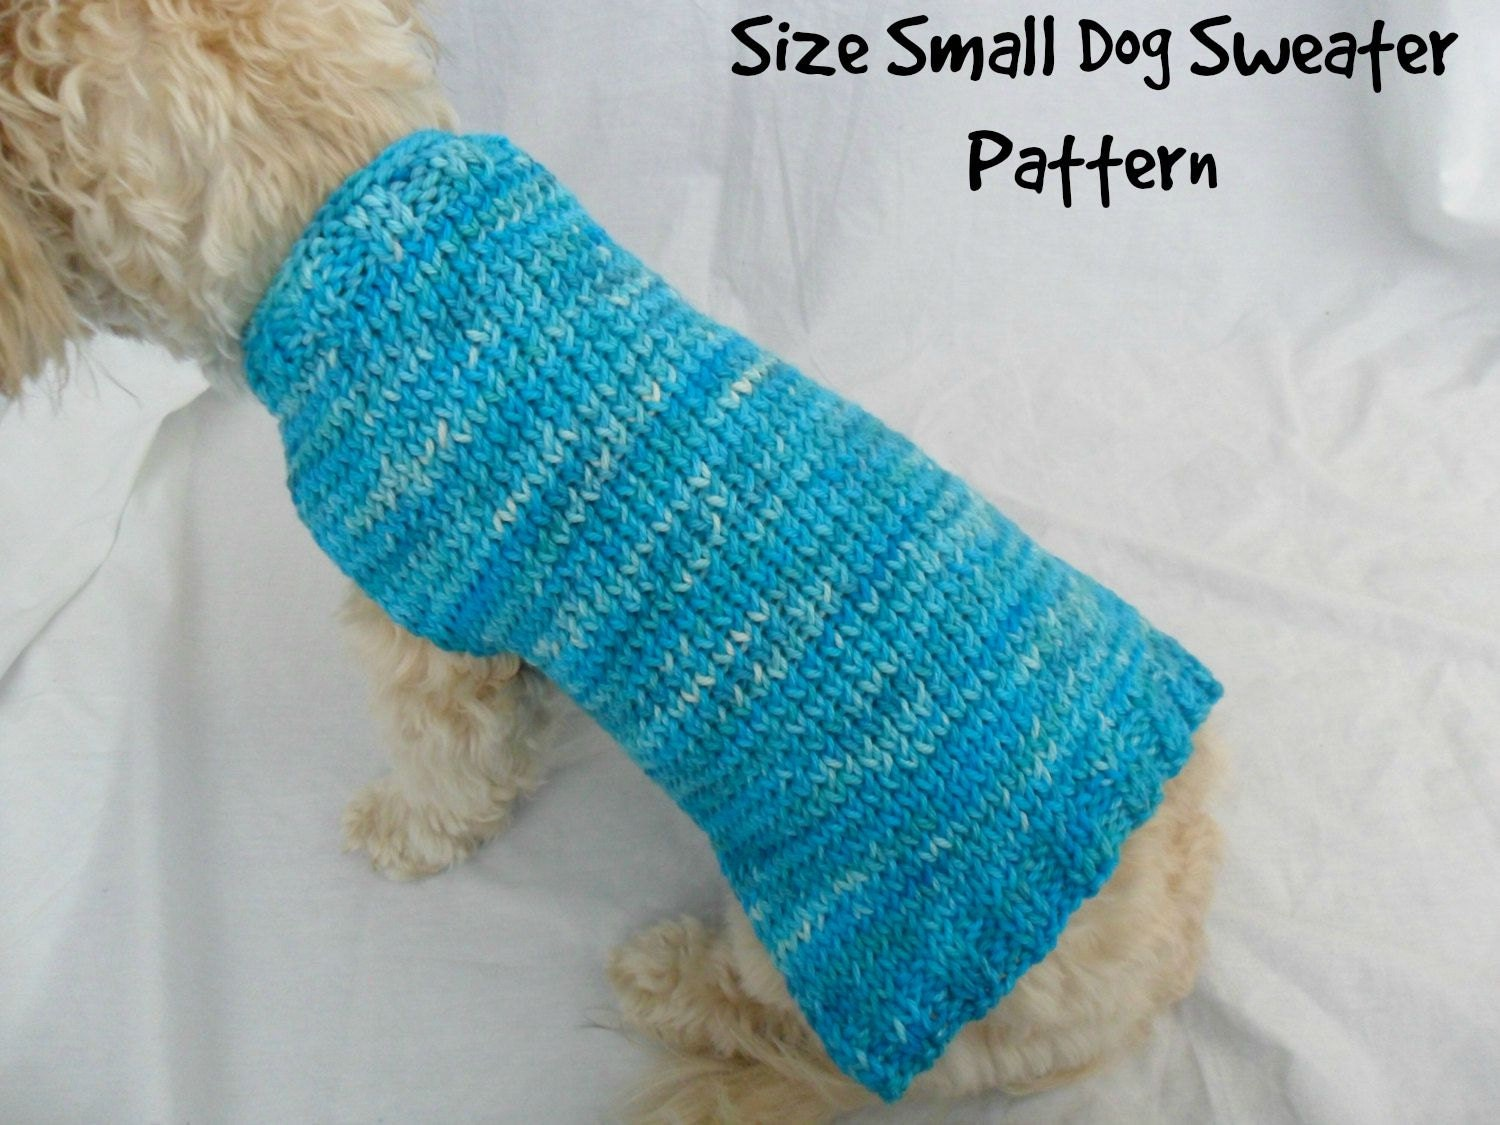 Knit Dog Coat Pattern : Simple dog sweater knitting pattern PDF small dog sweater